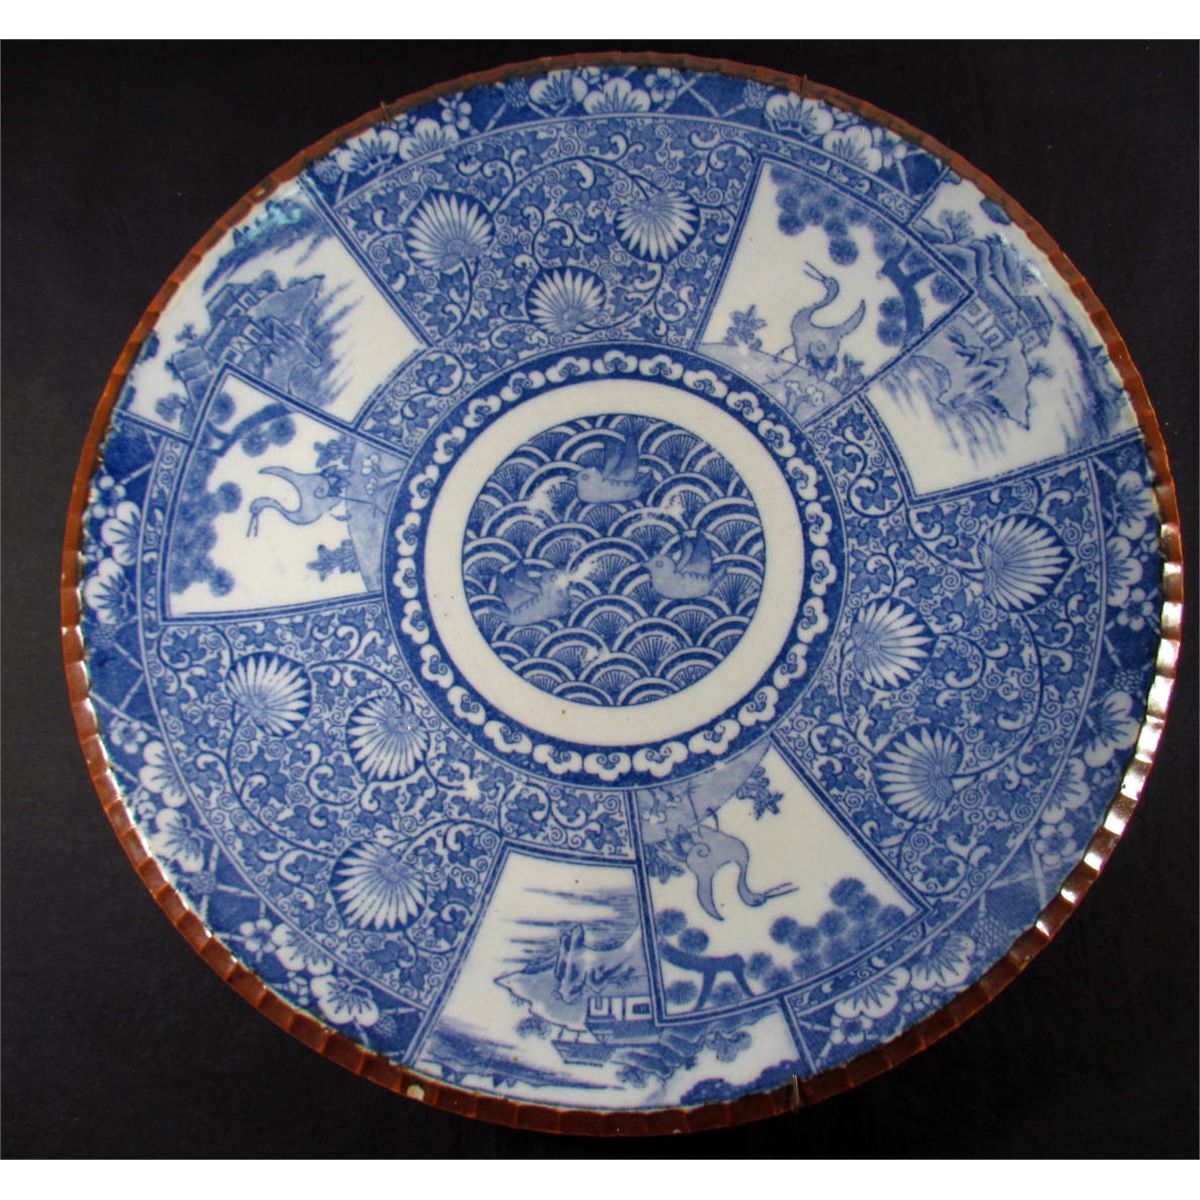 Chinese Porcelain Plates : Pics for gt chinese porcelain plate